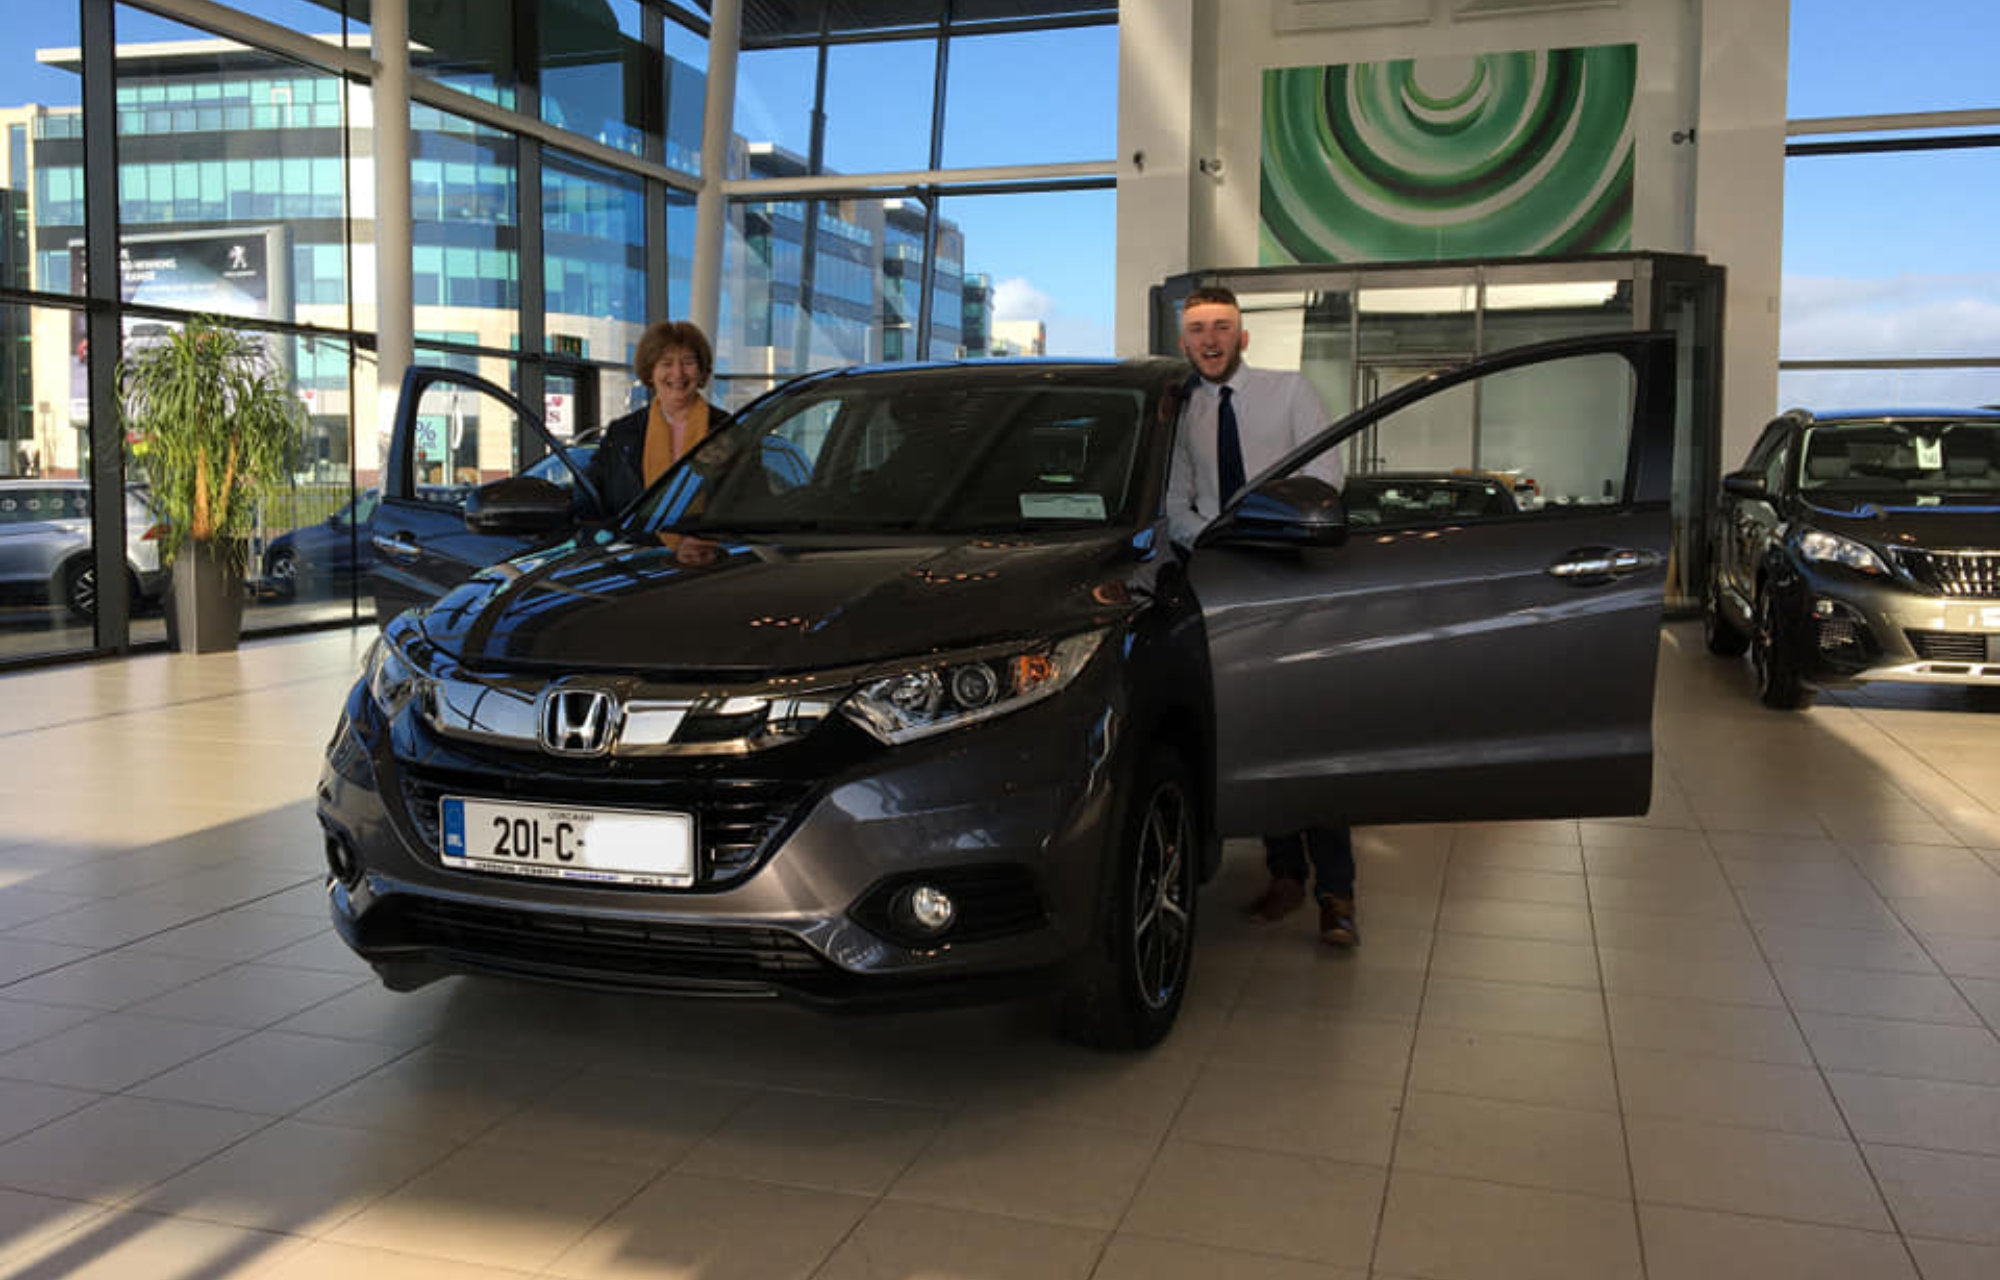 Marie collecting her new HR-V